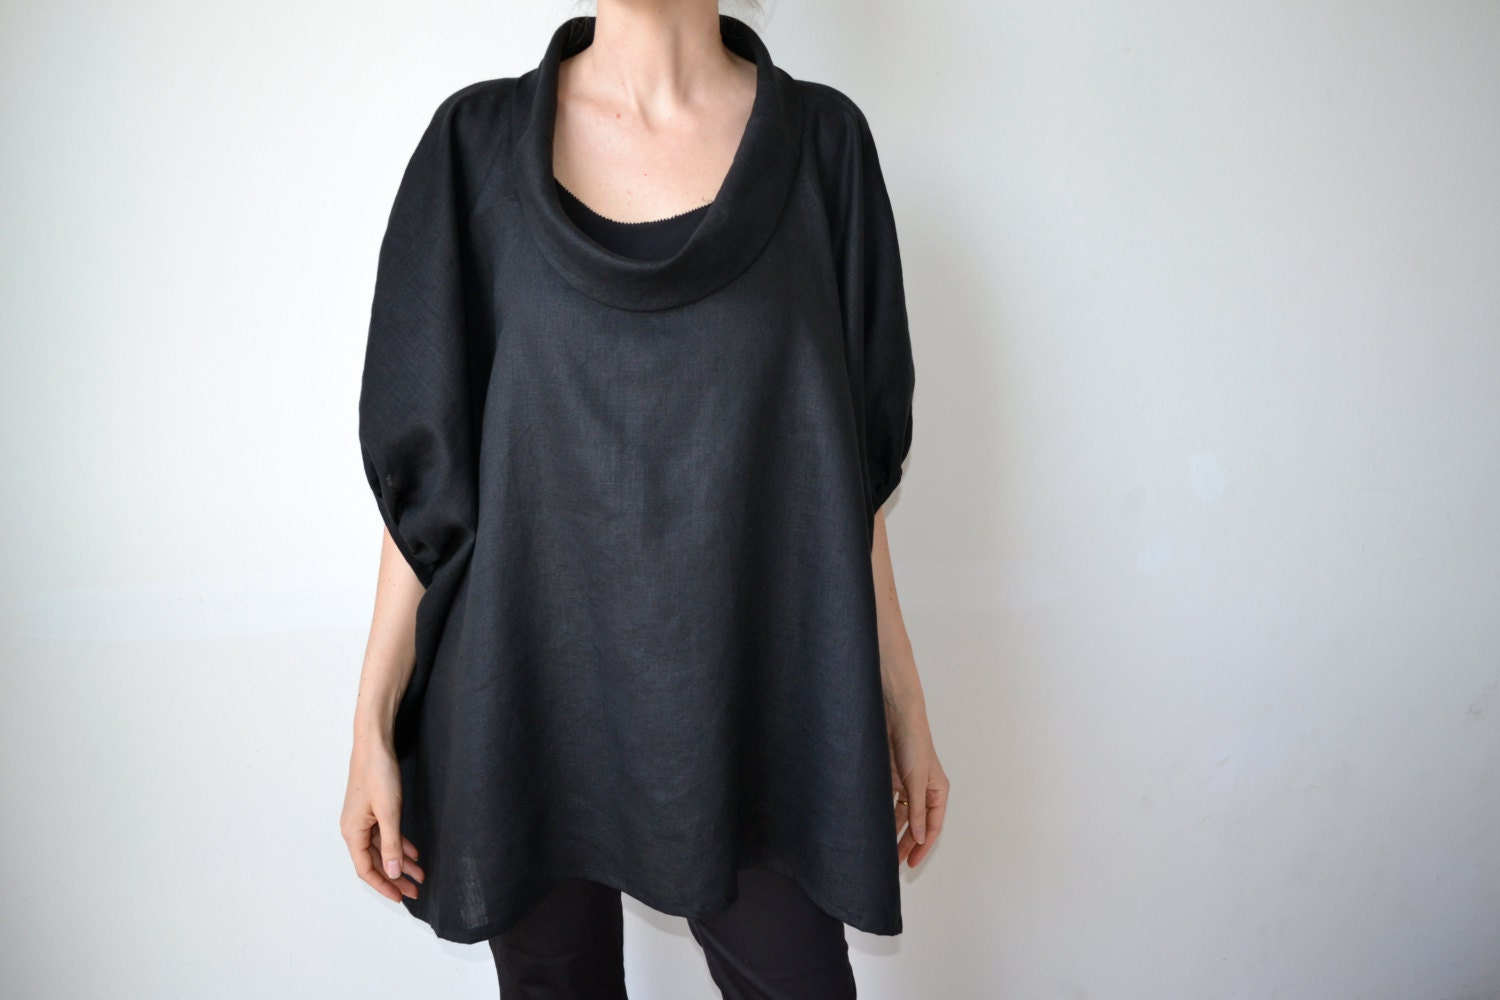 Black linen top / linen tunic / Plus size clothing / Plus size